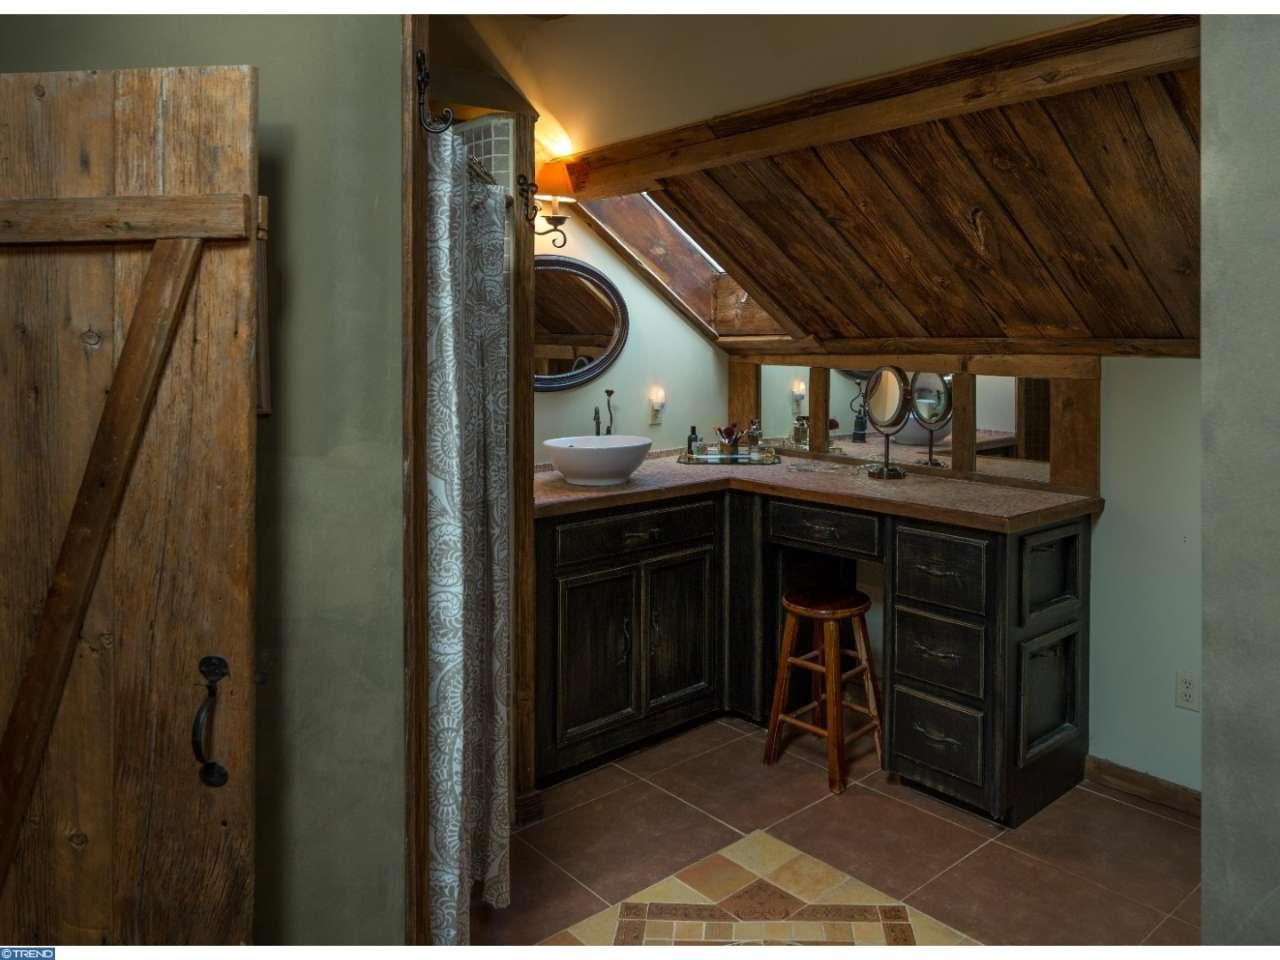 Bathroom - Leap Year Barn house for sale in Doylestown PA is a magical storybook must see home